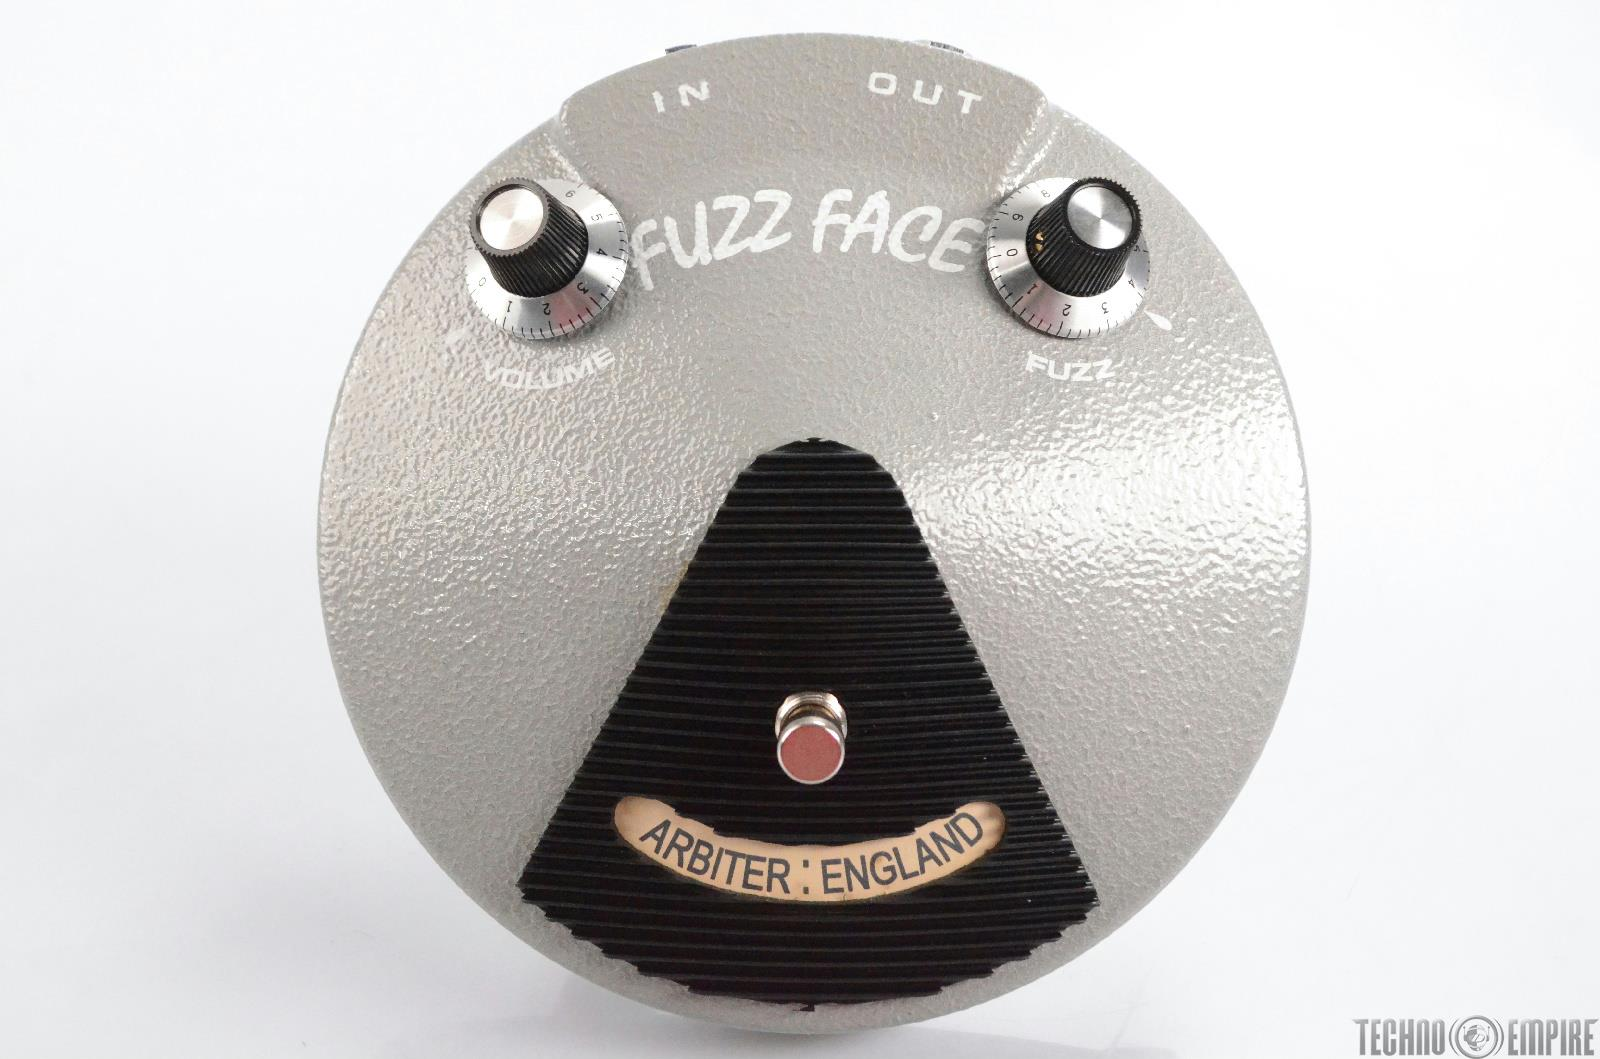 Arbiter England Grey Fuzz Face Guitar Pedal Reissue Made in England #30413